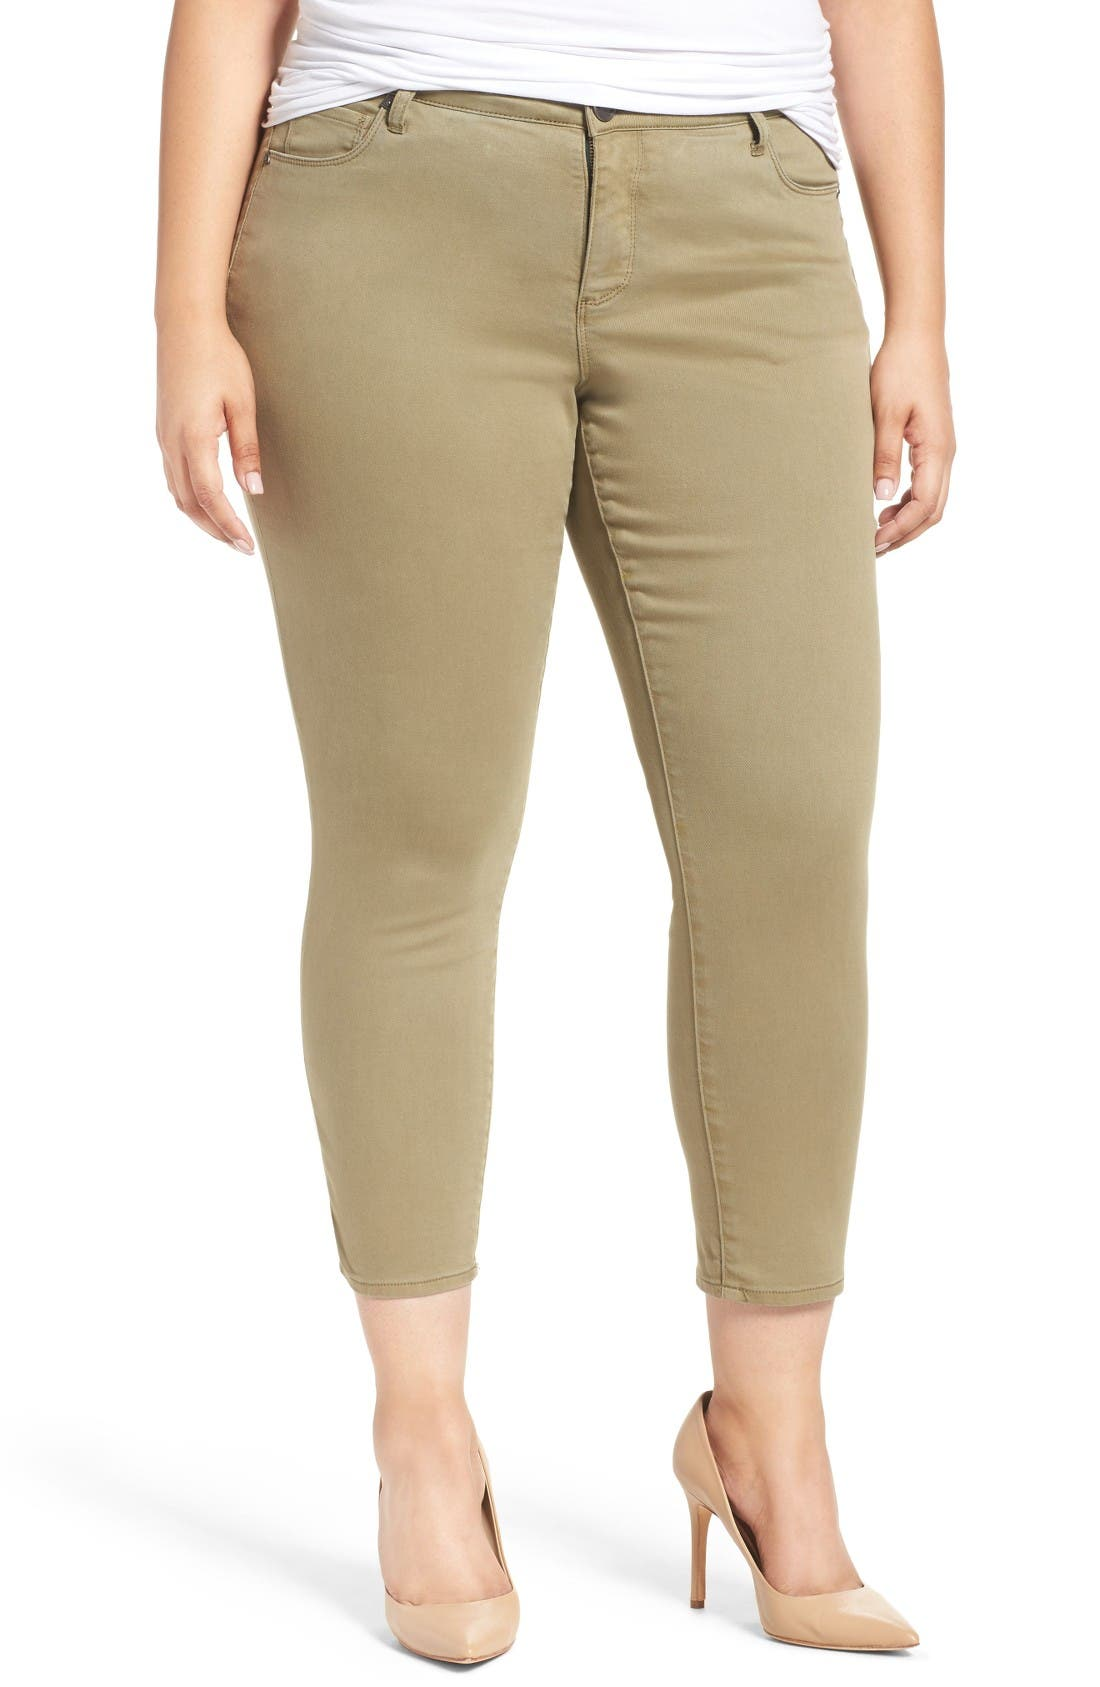 KUT FROM THE KLOTH Reese Stretch Ankle Skinny Pants